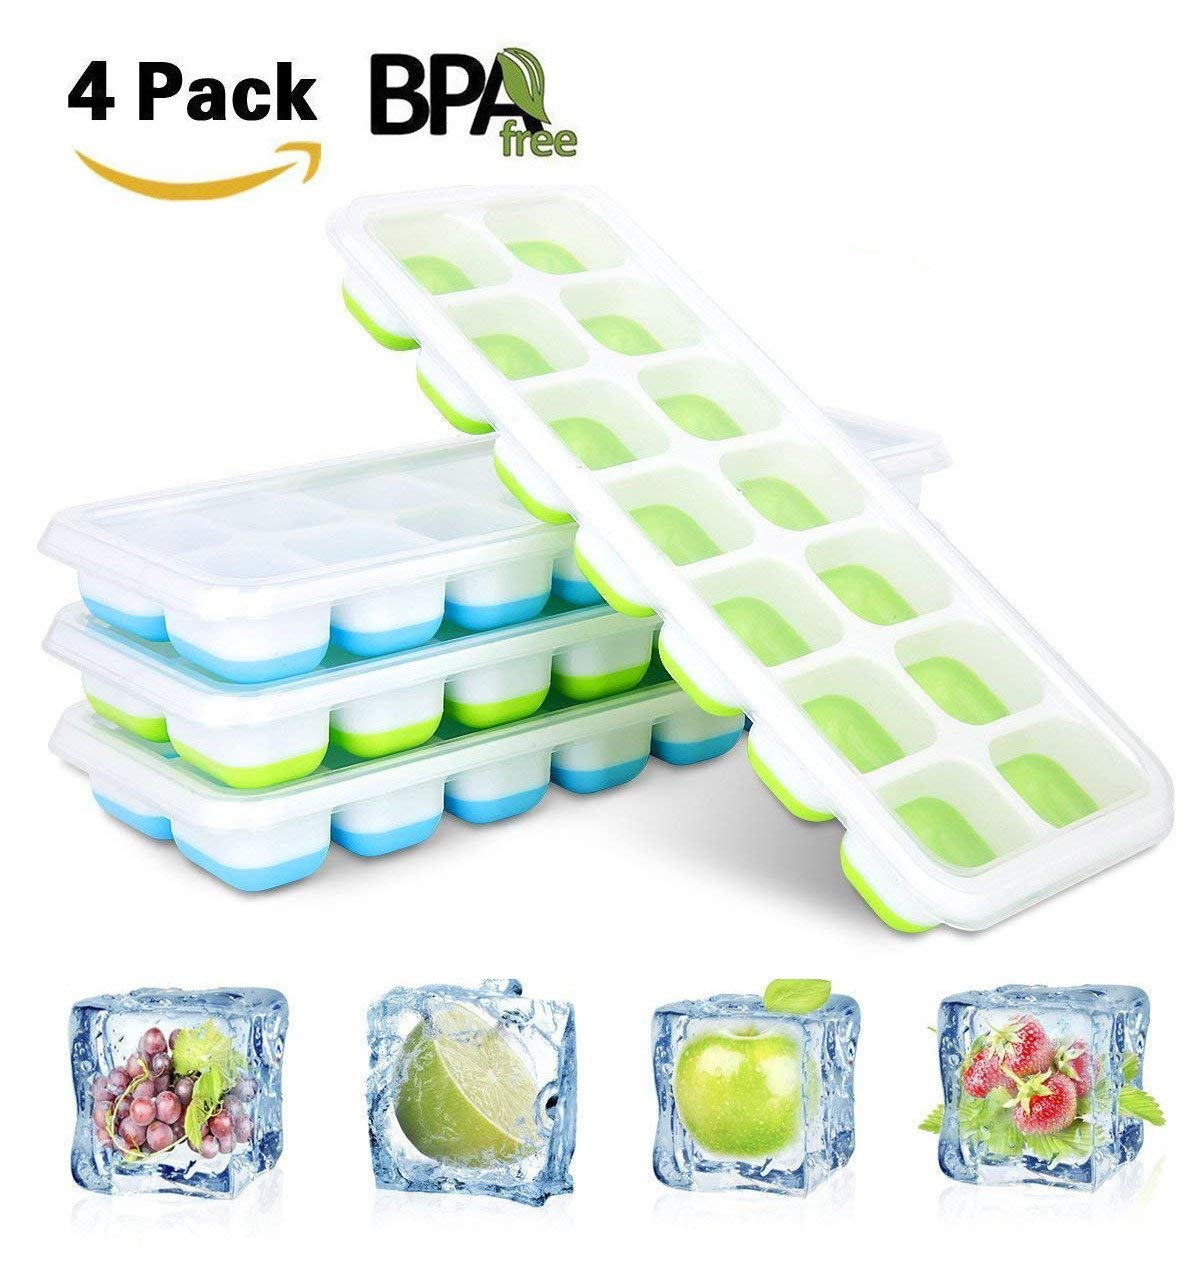 【FDA Certified and BPA Free】4PACK Silicone Ice Cubes Molds,AMZSTAR 14 Shaped Flexible Ice Trays Can Make 56 Ice Cubes,with Spill-Resistant Removable Lid (Green+Blue)